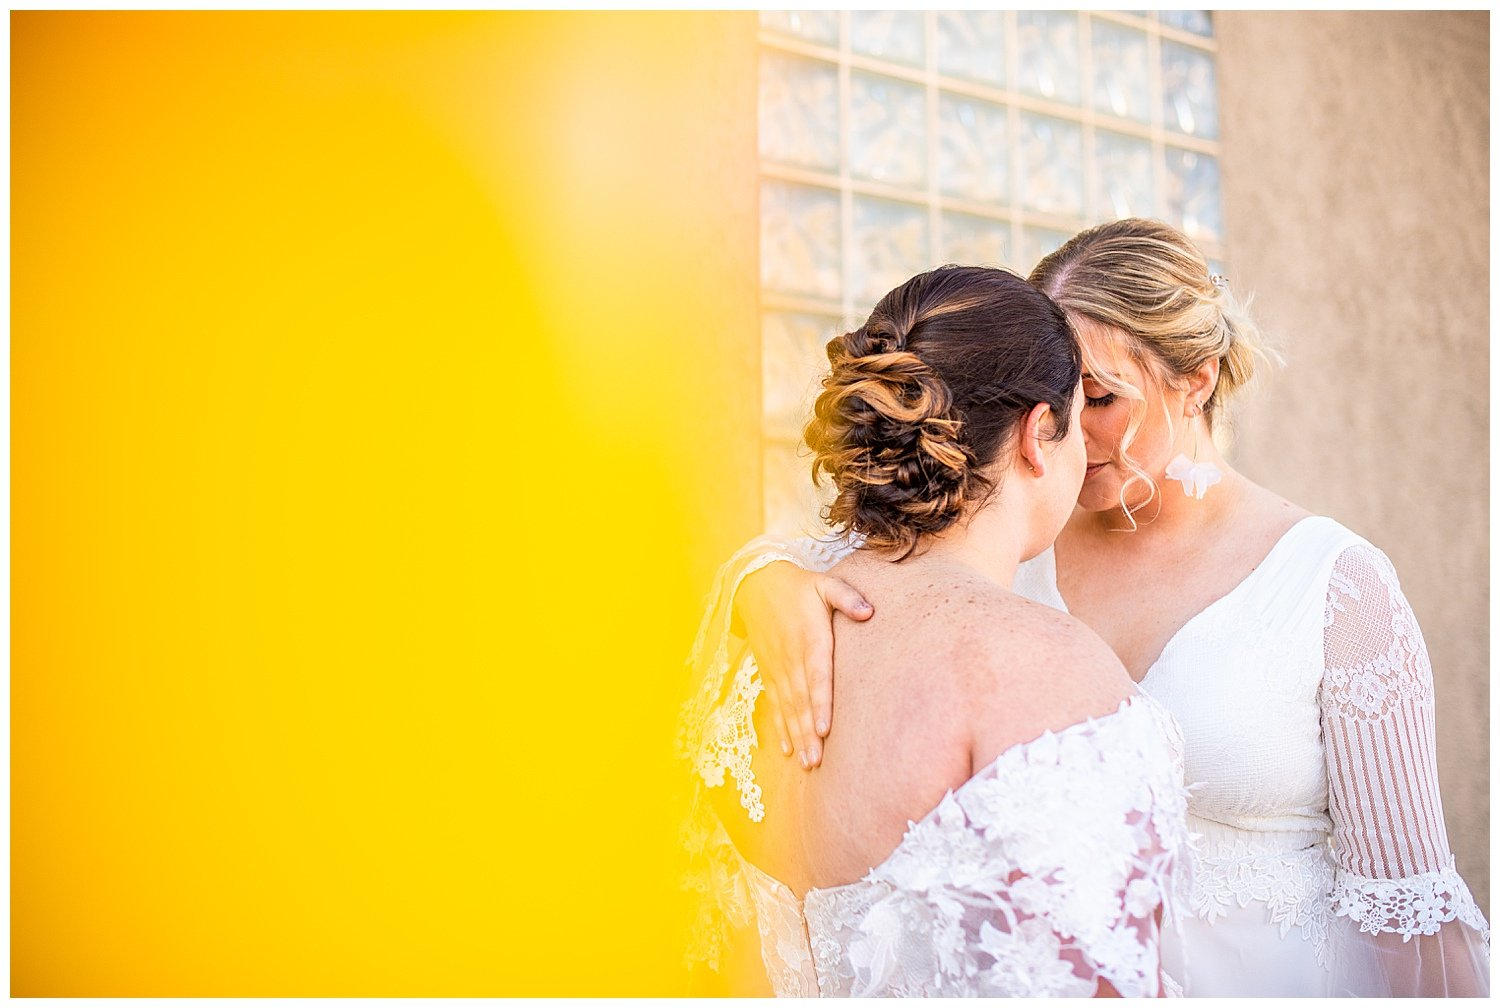 lgbtq friendly wedding photographer denver